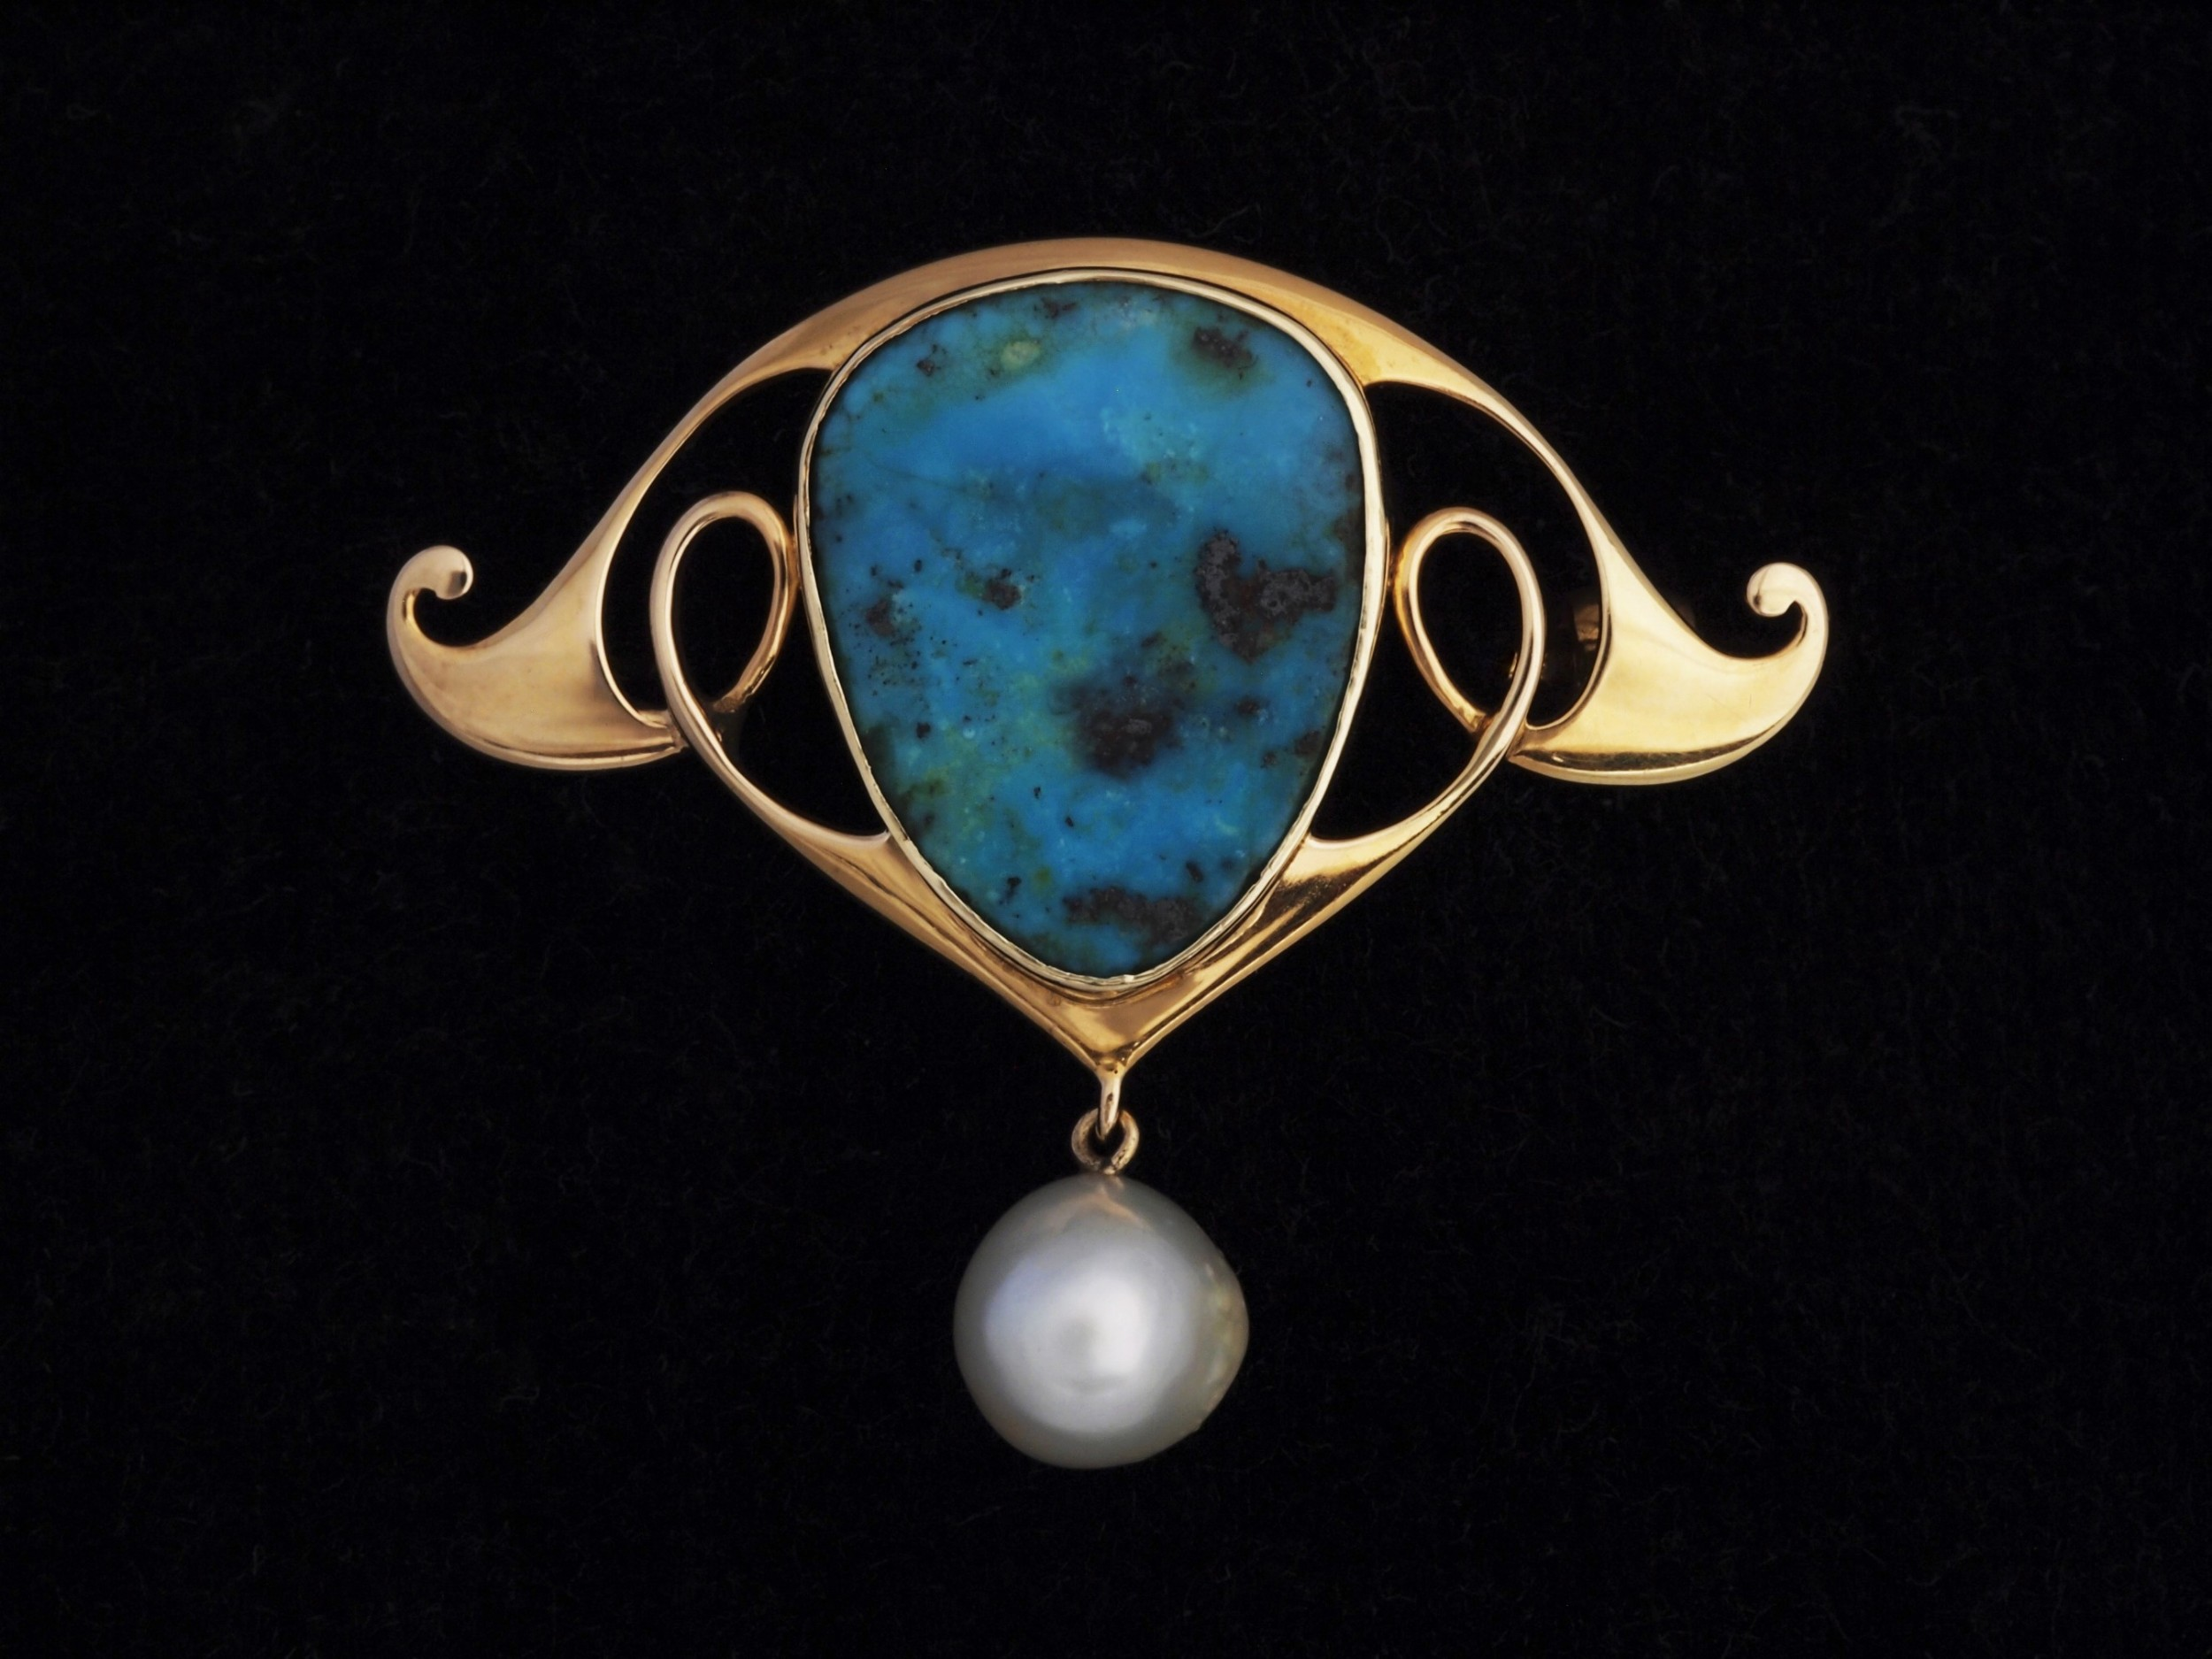 gold and turquoise brooch by murrle bennett